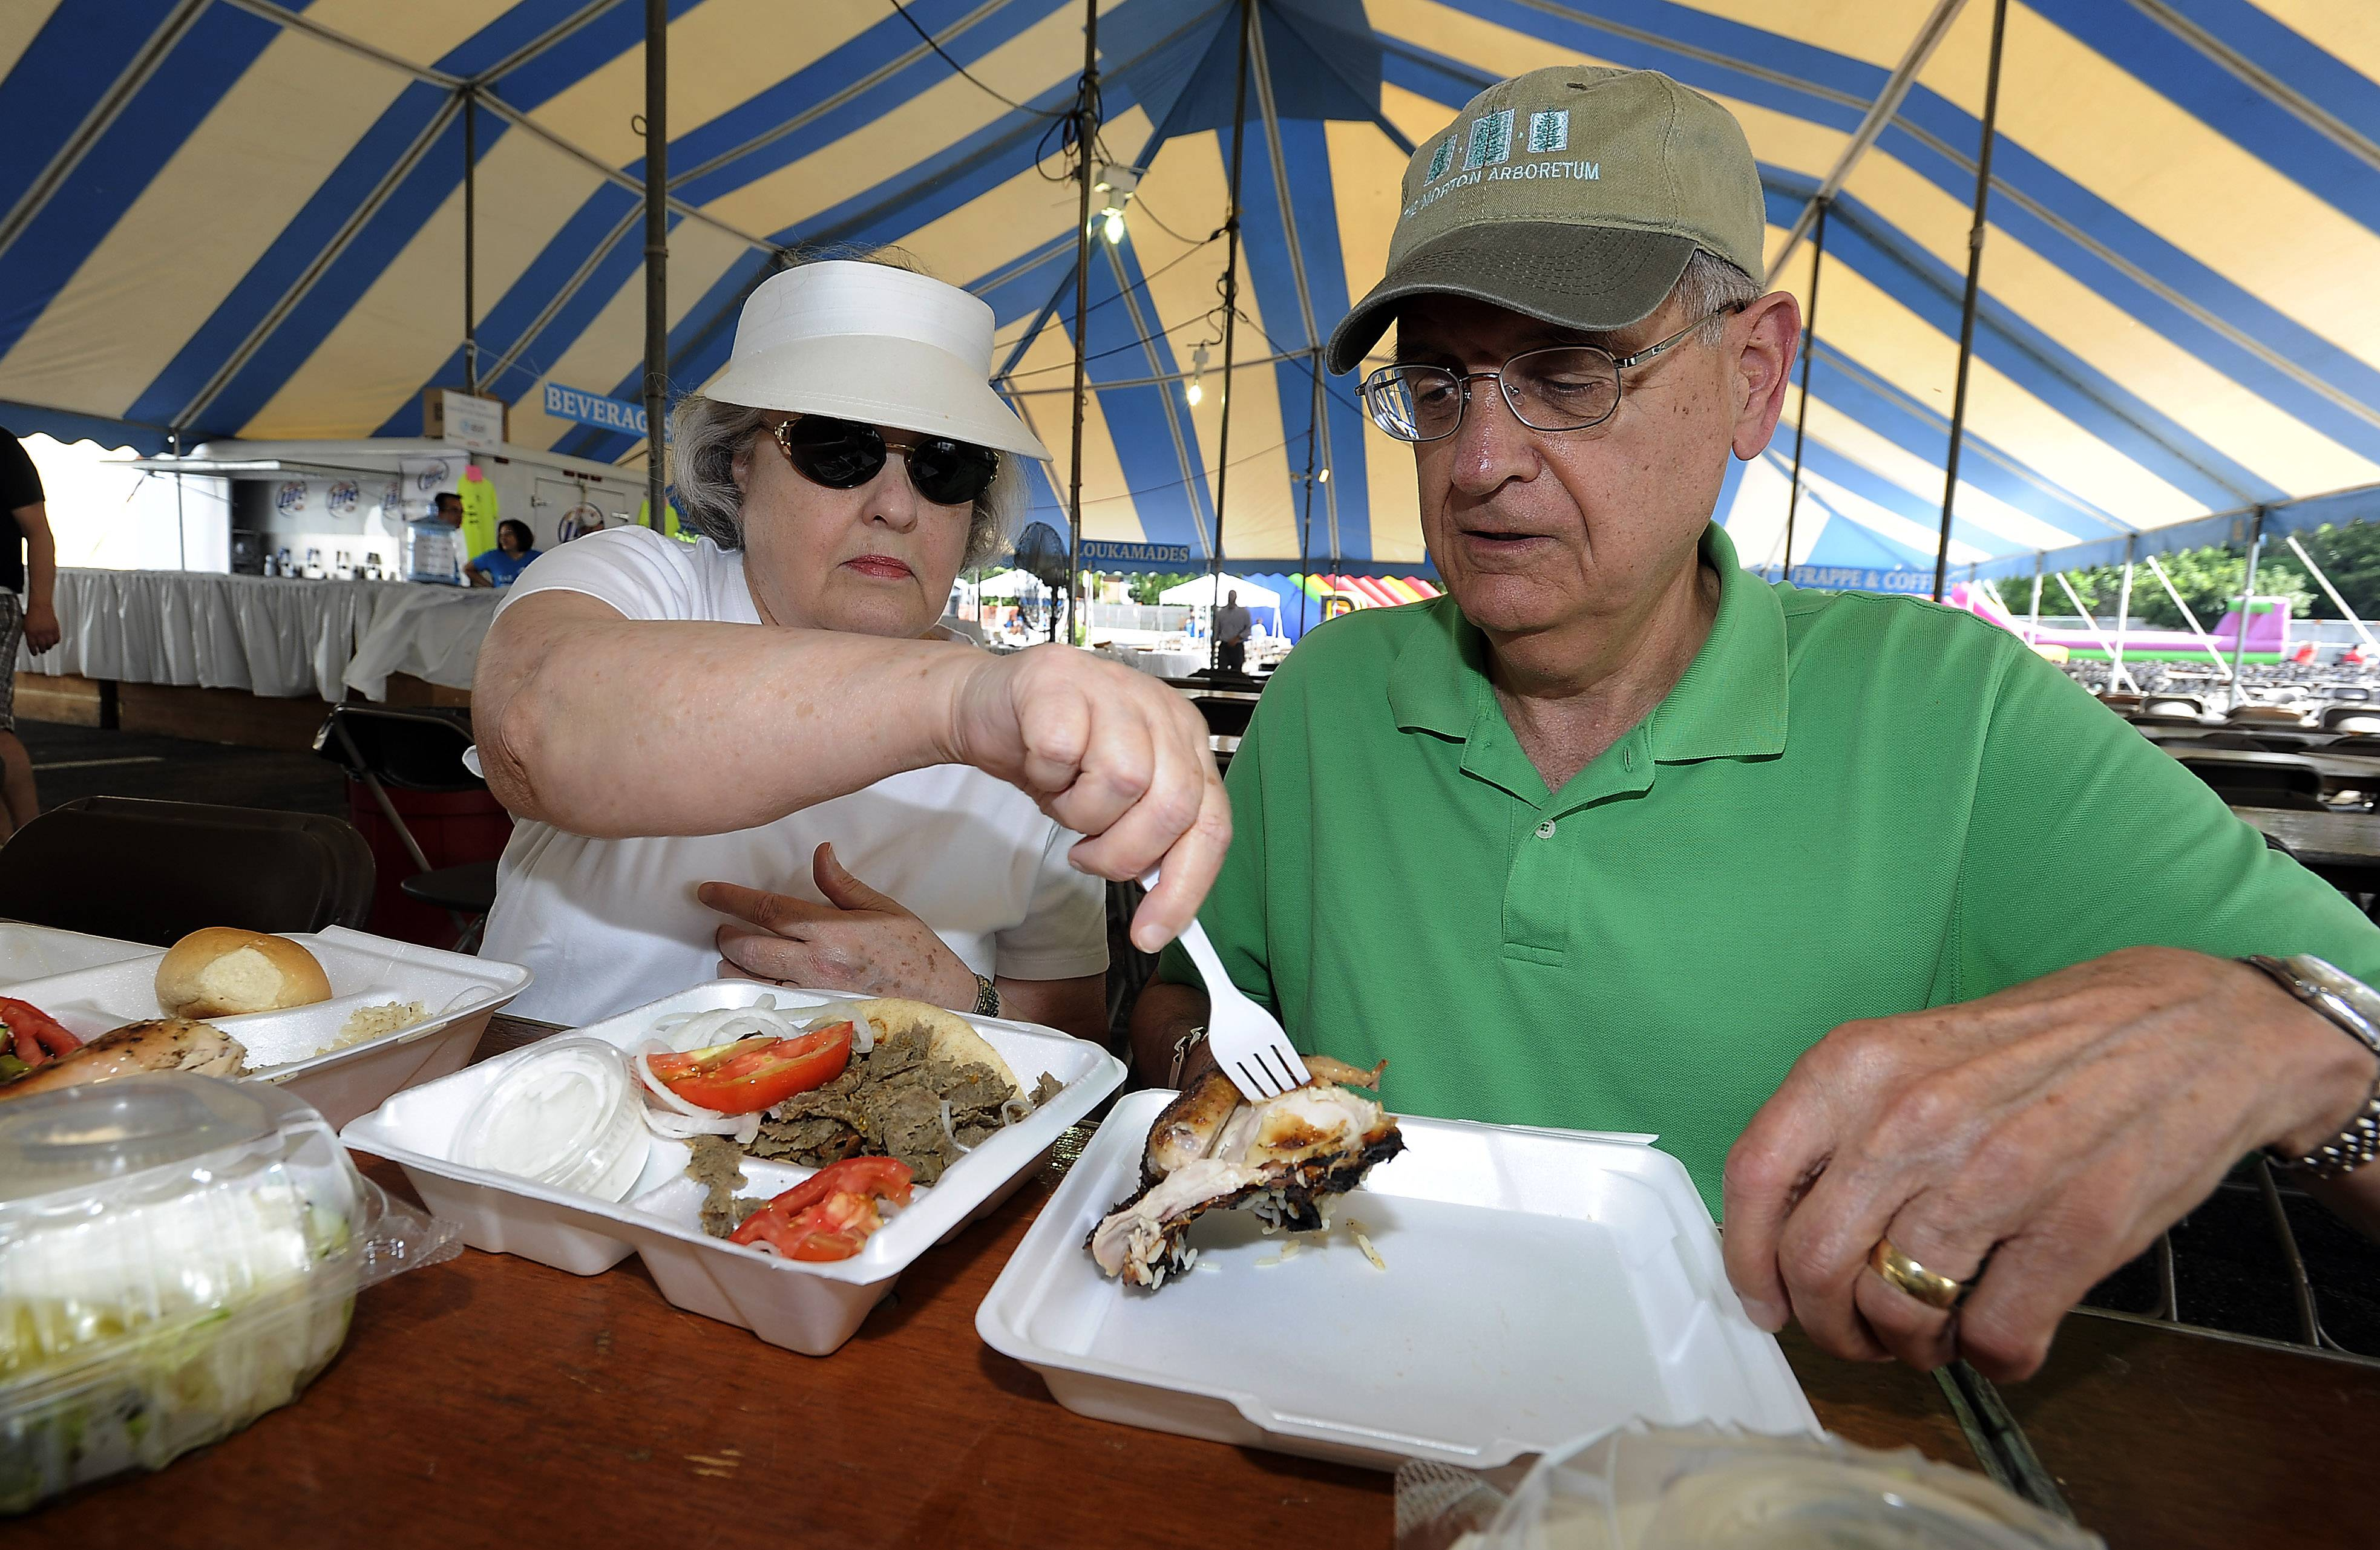 Tom and Gloria Garrison of Schaumburg prepare to enjoy chicken and gyros at the annual St. Nectarios Church Greek Fest in Palatine on Friday. The event, which runs through Sunday, includes authentic Greek food, music, and more. Admission is $2. For details and a coupon, visit stnectariosgoc.org.